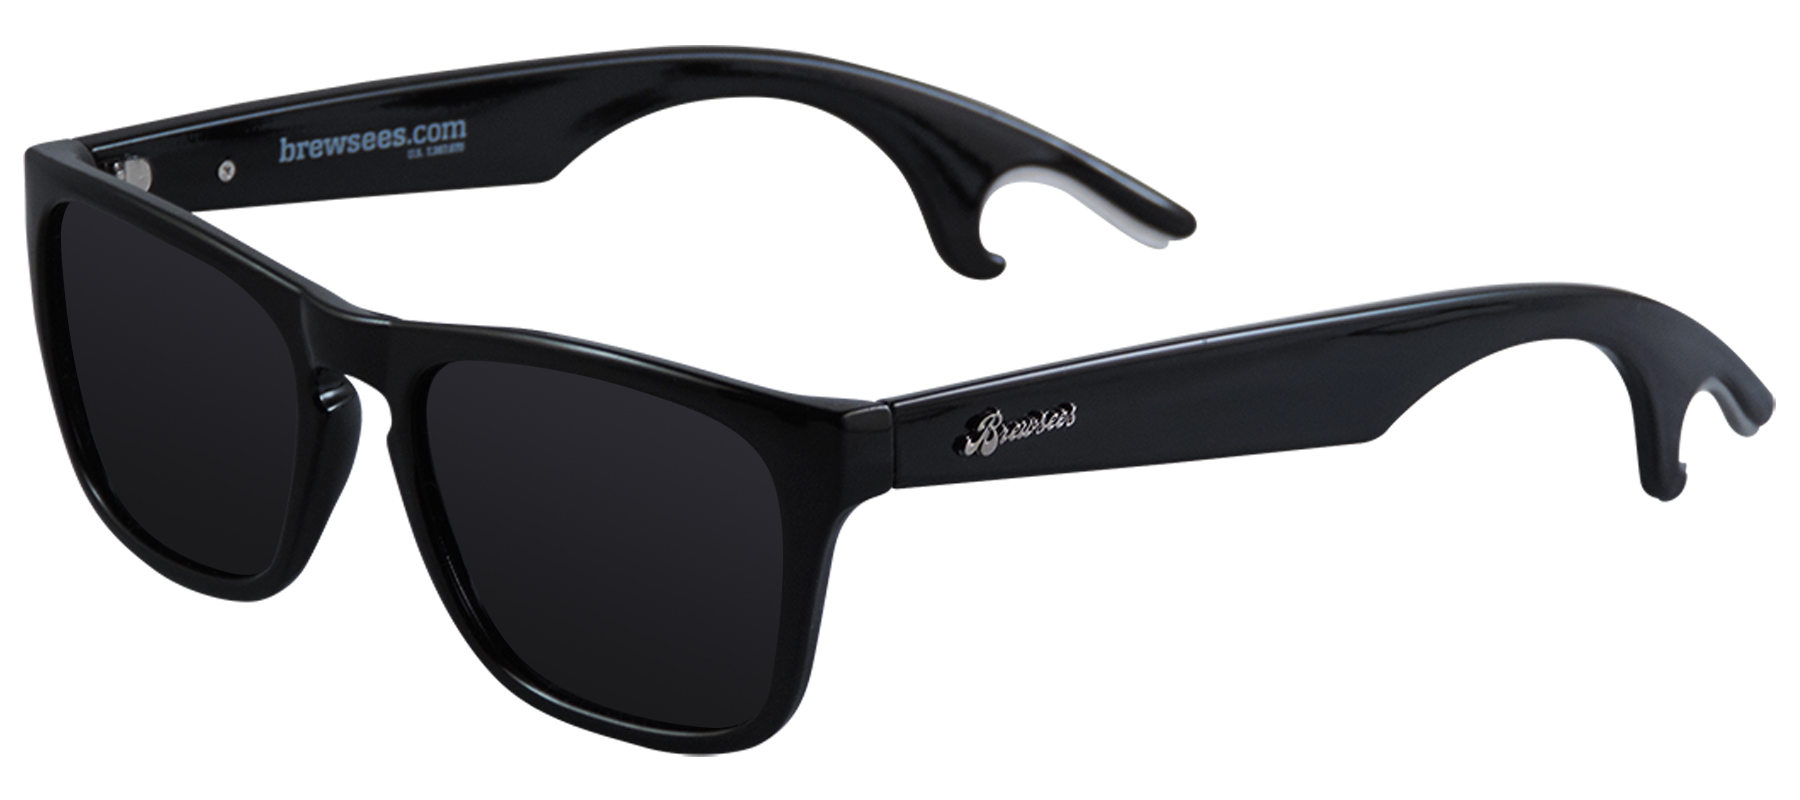 wayfarer designed sunglasses with bottle openers